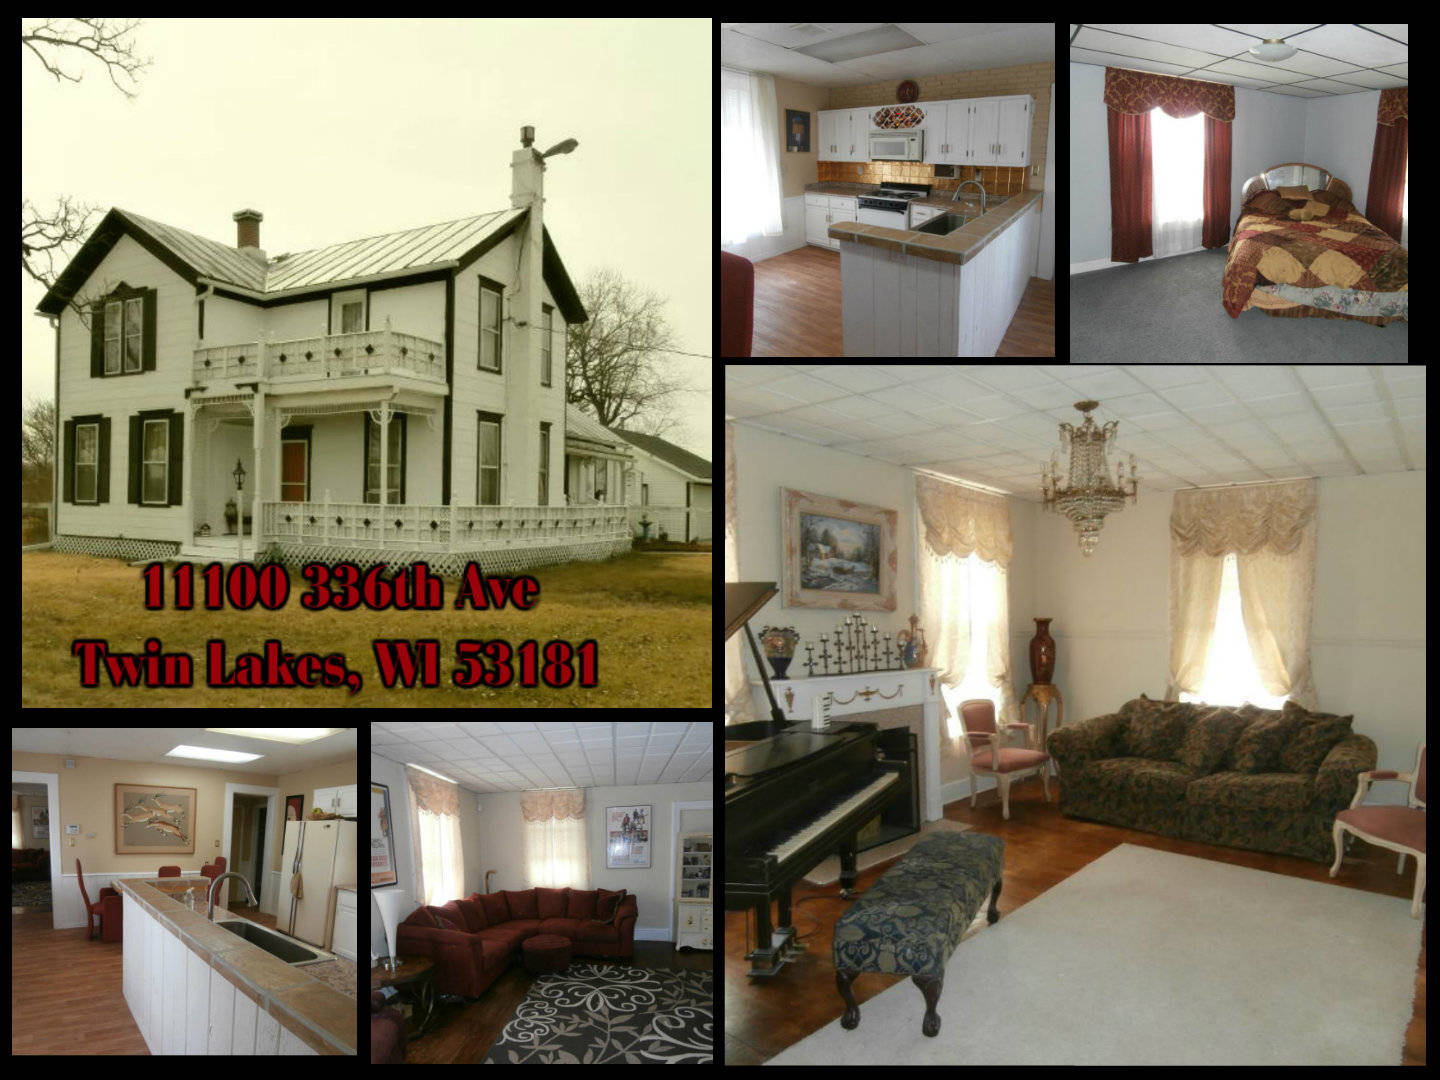 11100 336th Ave, Twin Lakes, WI 53181